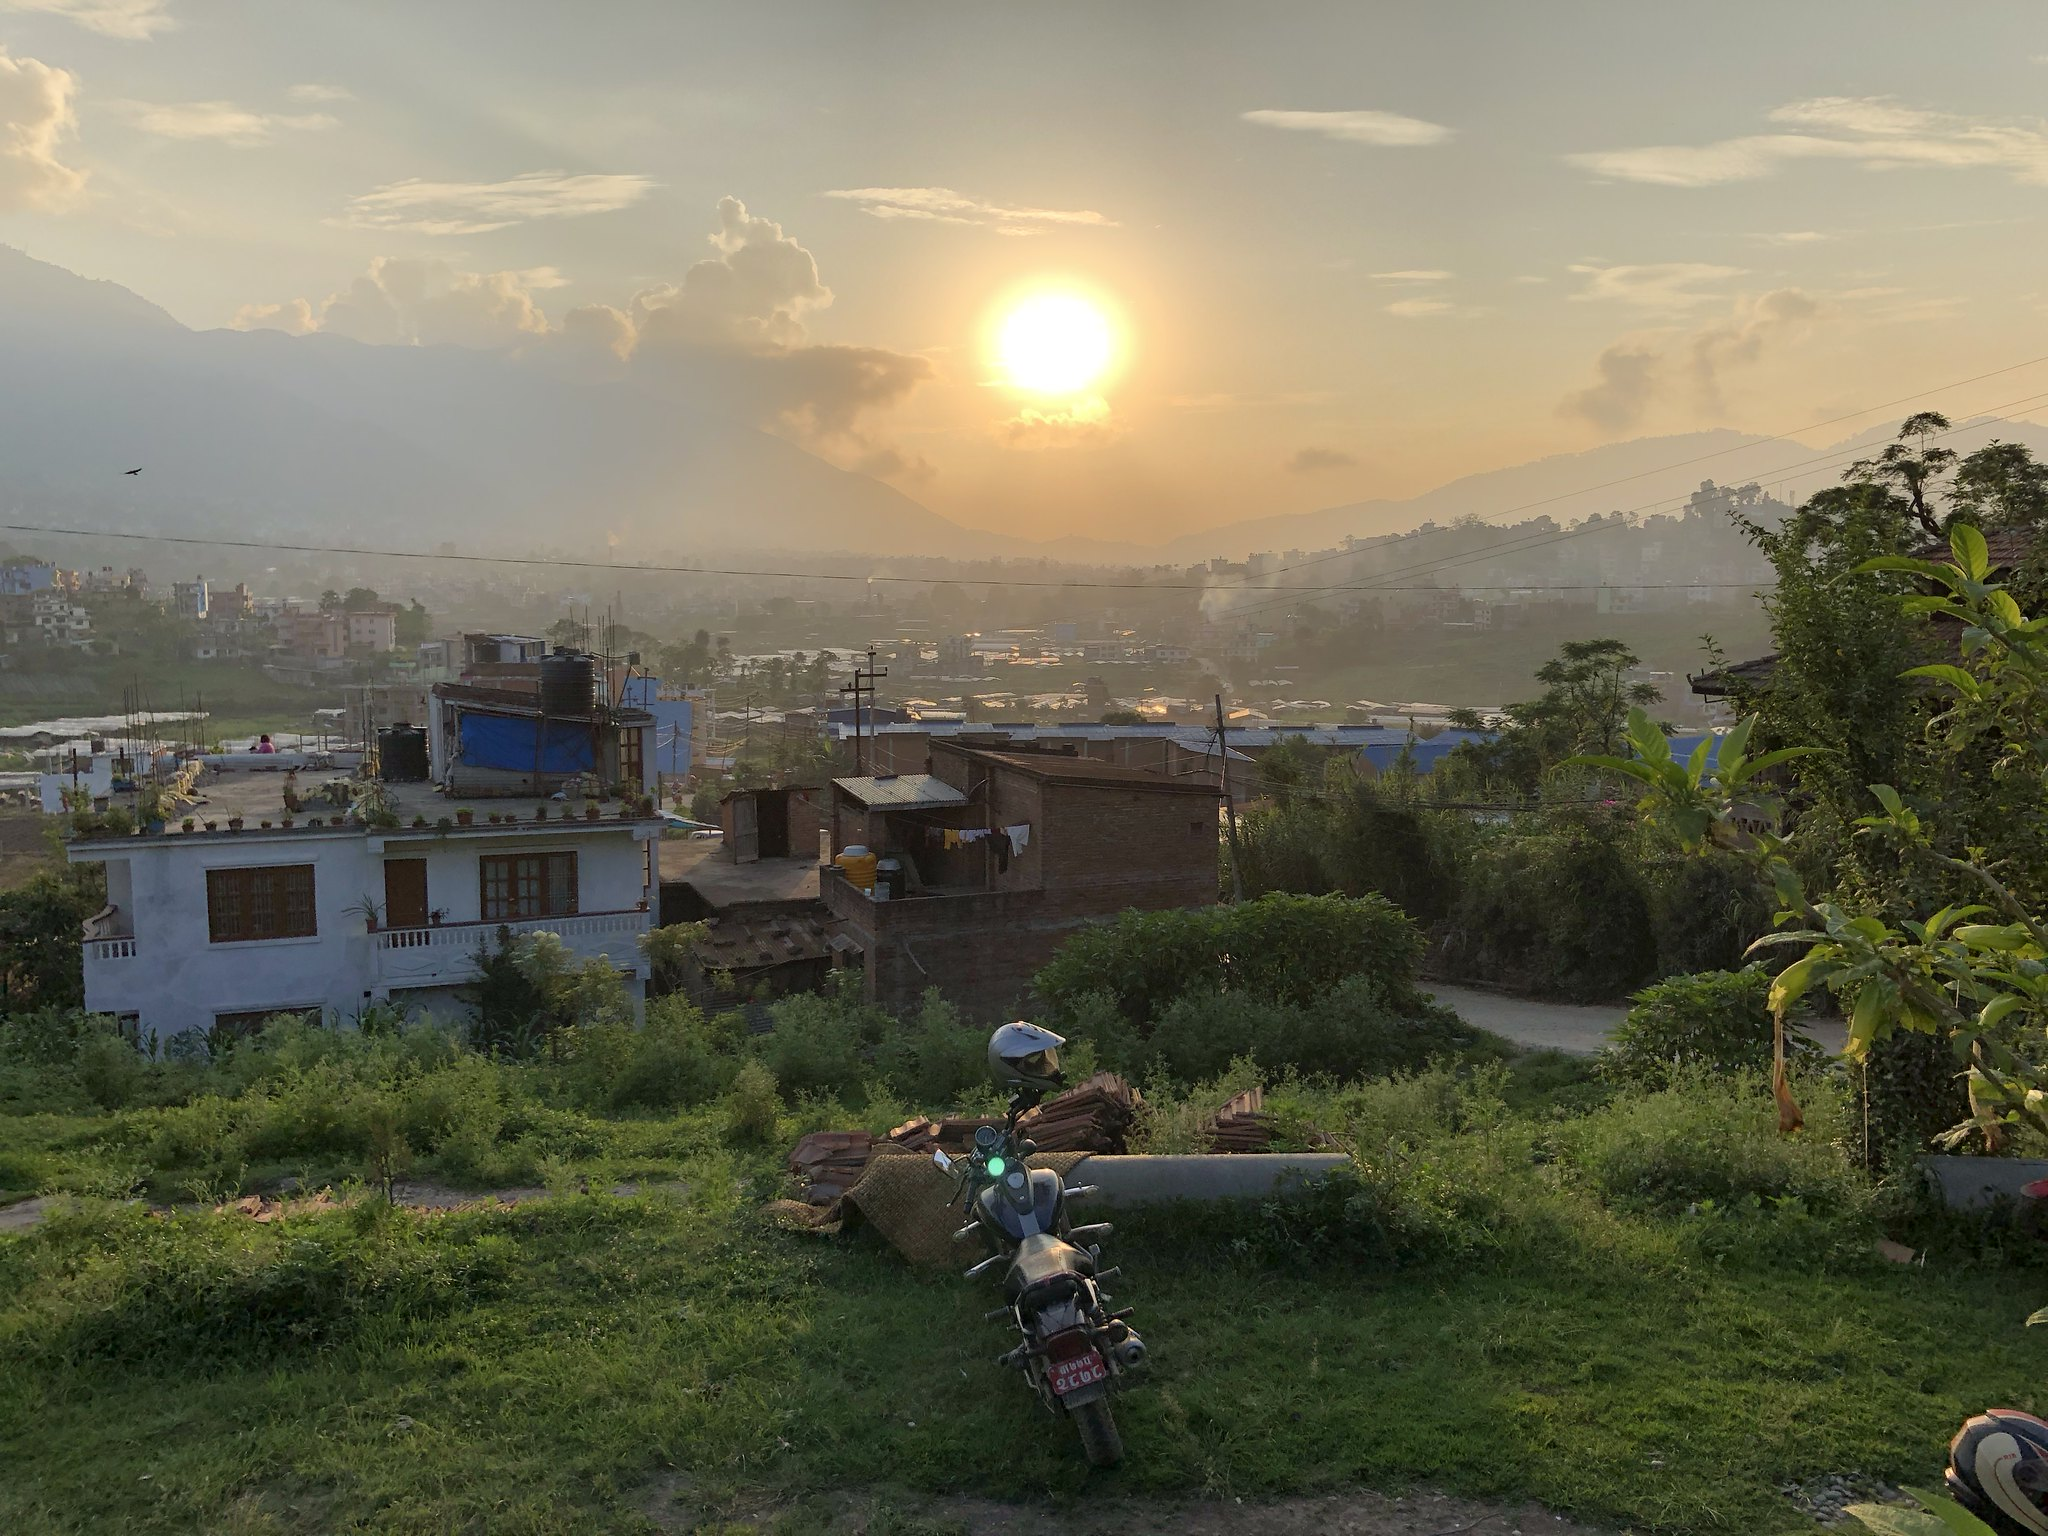 View from Kirtipur